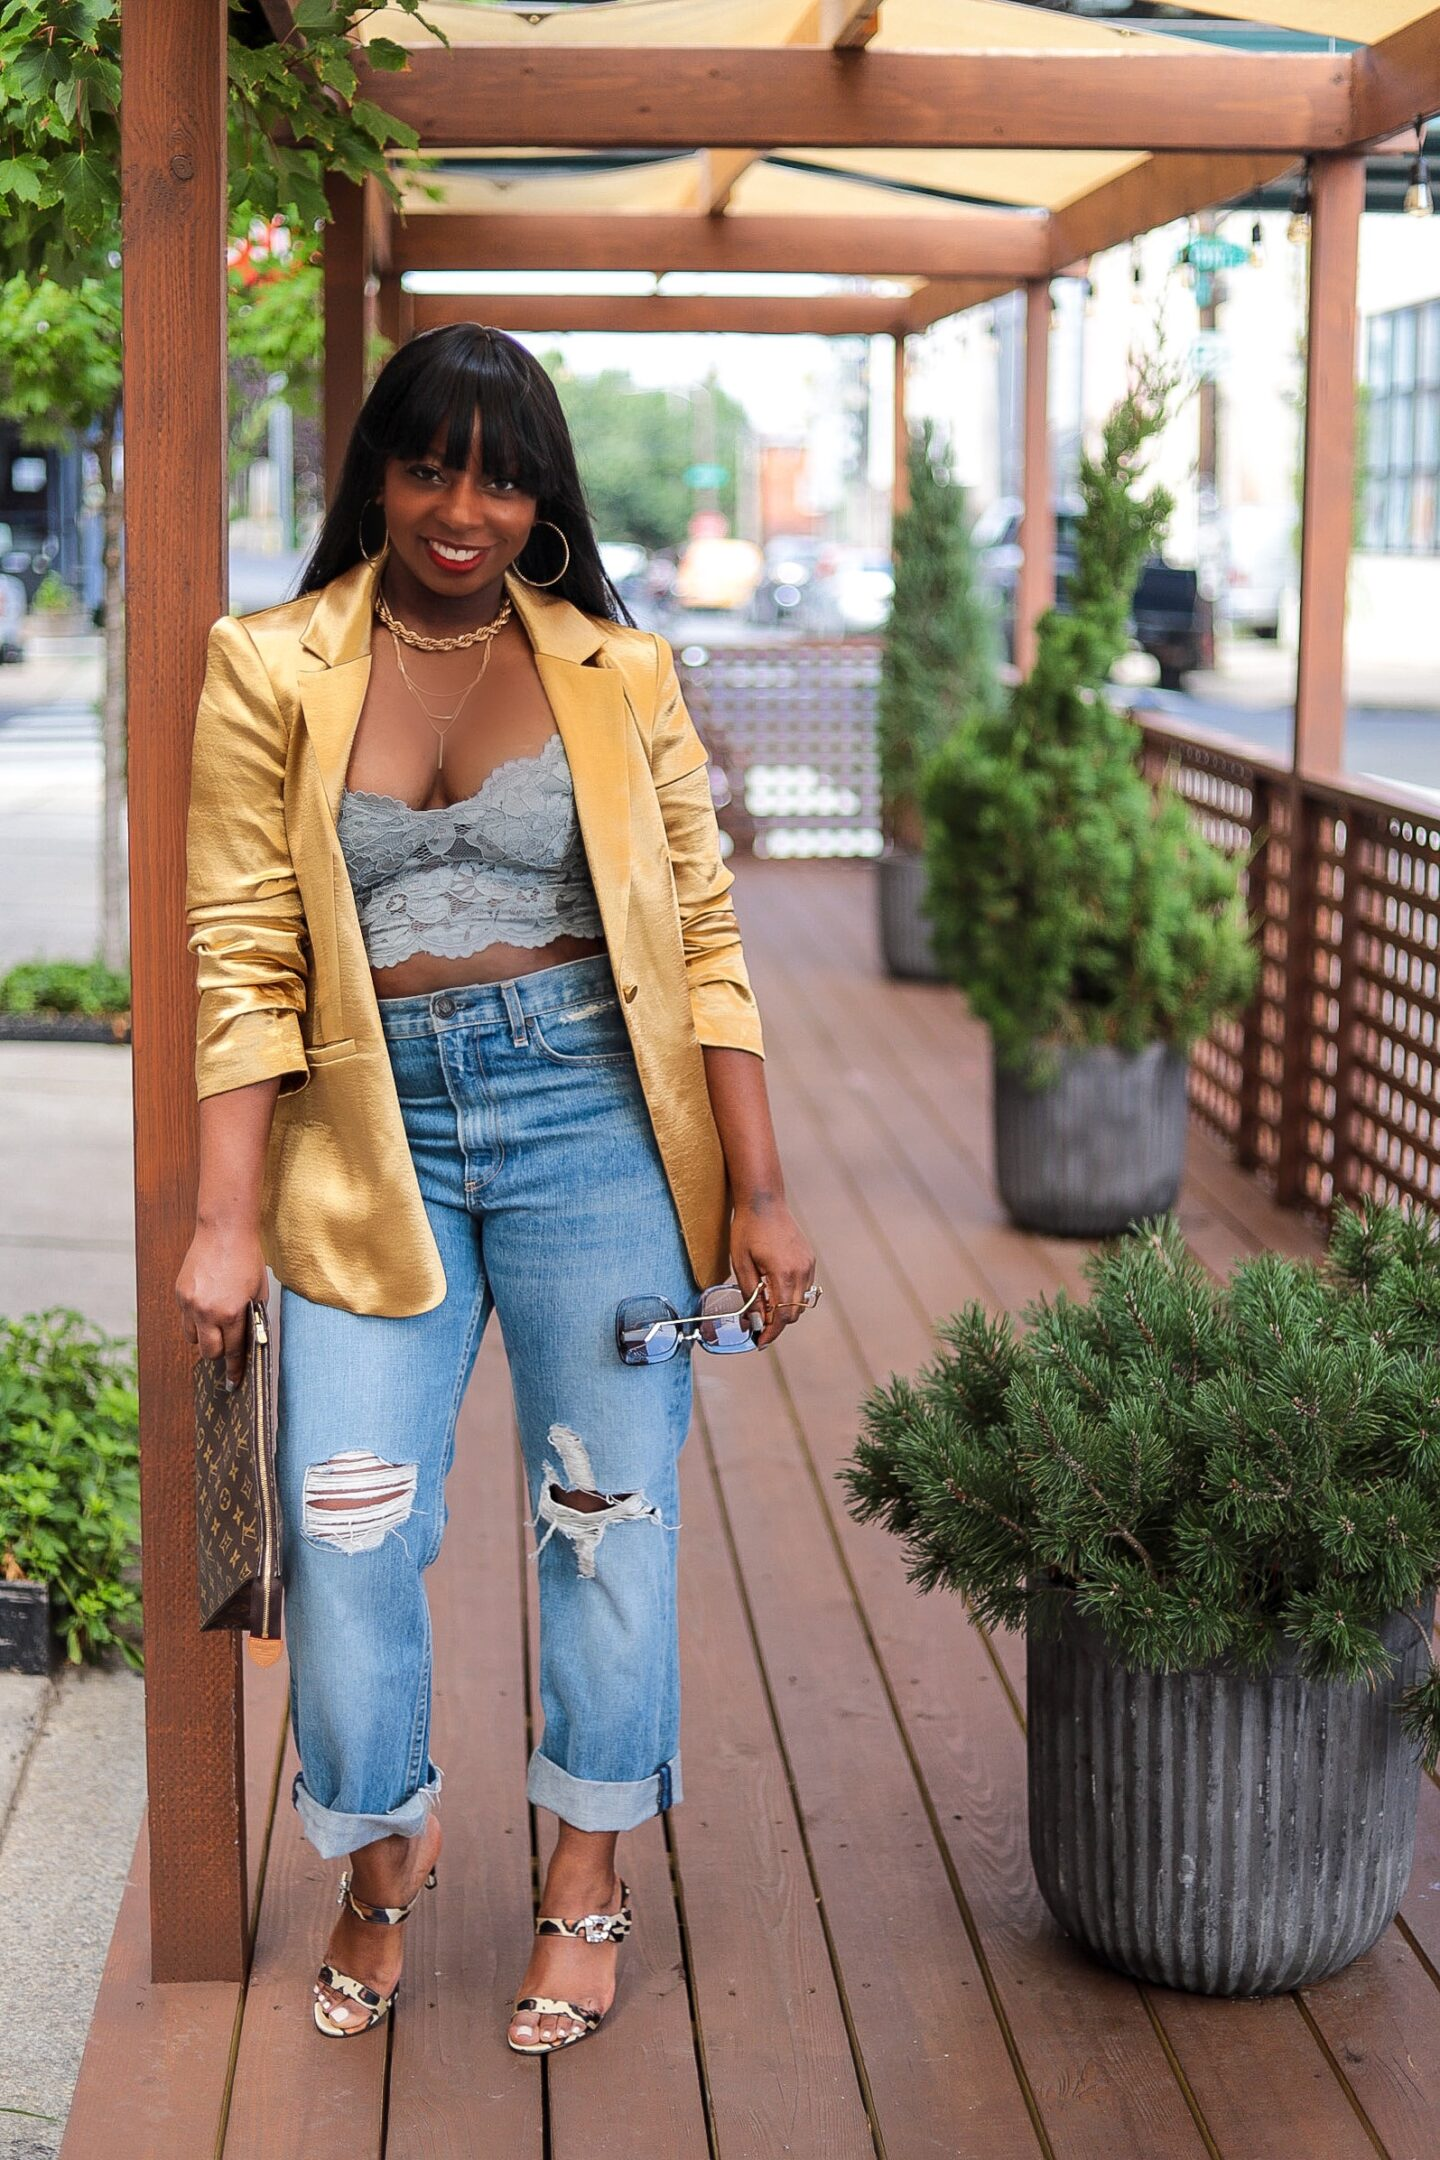 How to Wear The Bralette Trend for an Everyday Chic Look